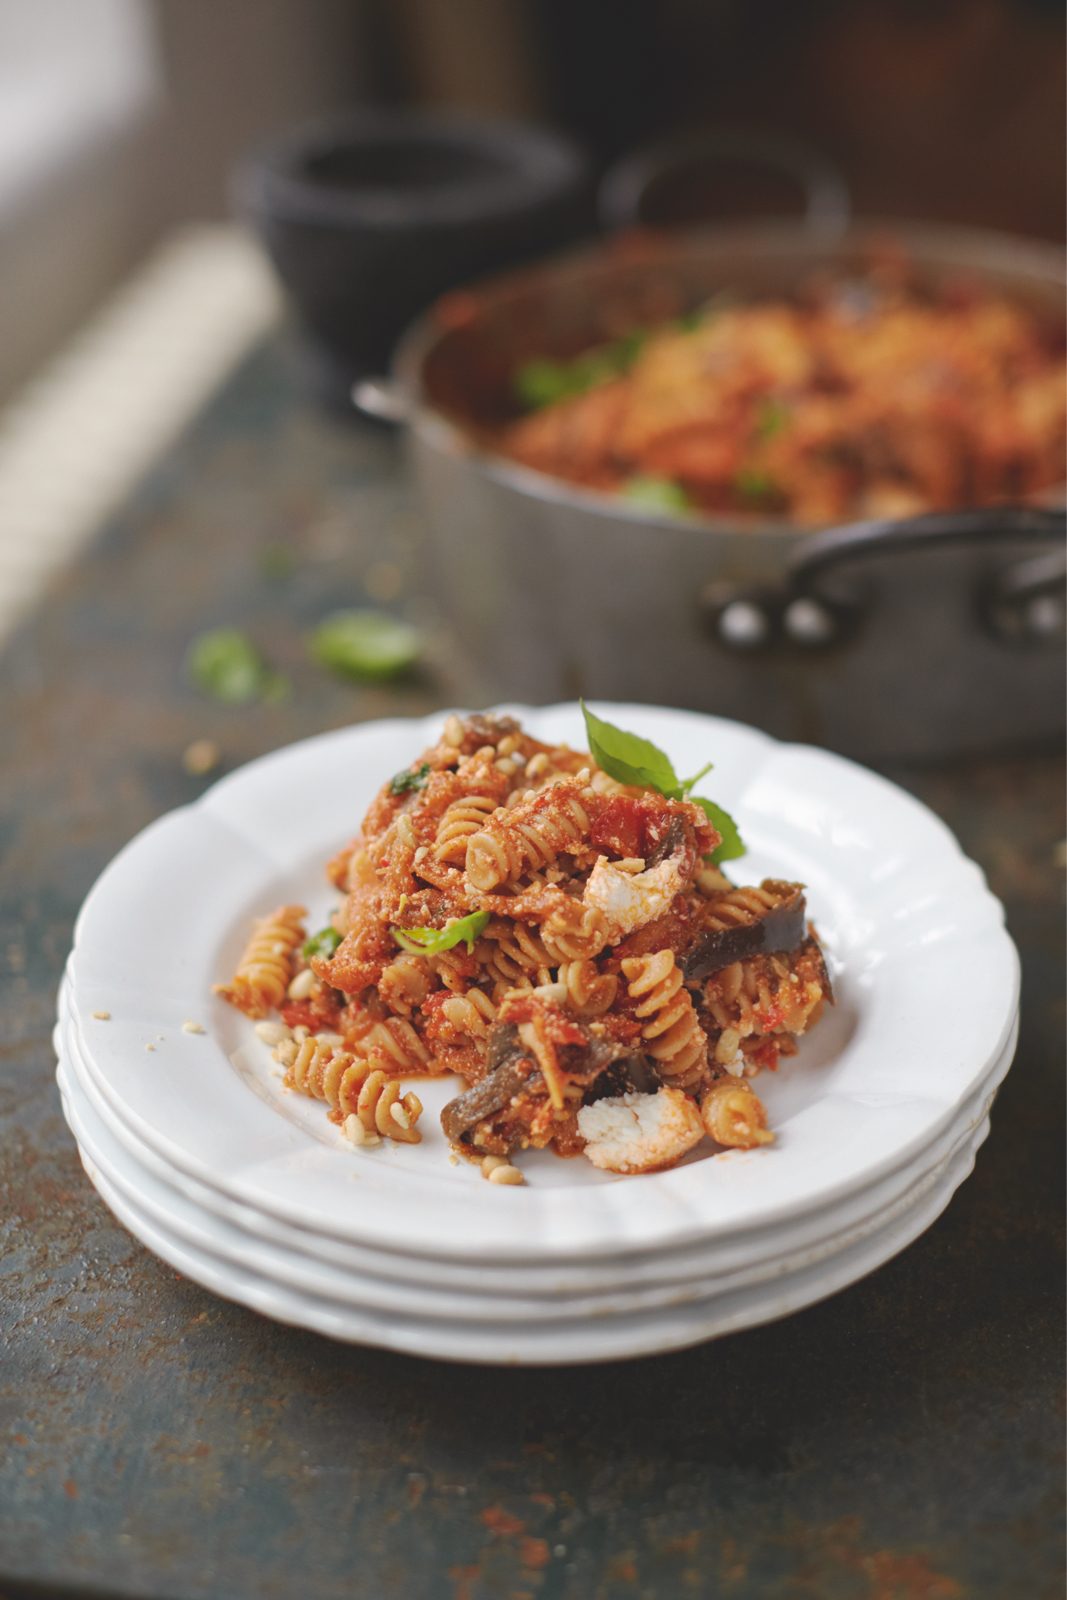 Jamie oliver 39 s happiness pasta and everyday super food - Cuisine jamie oliver ...